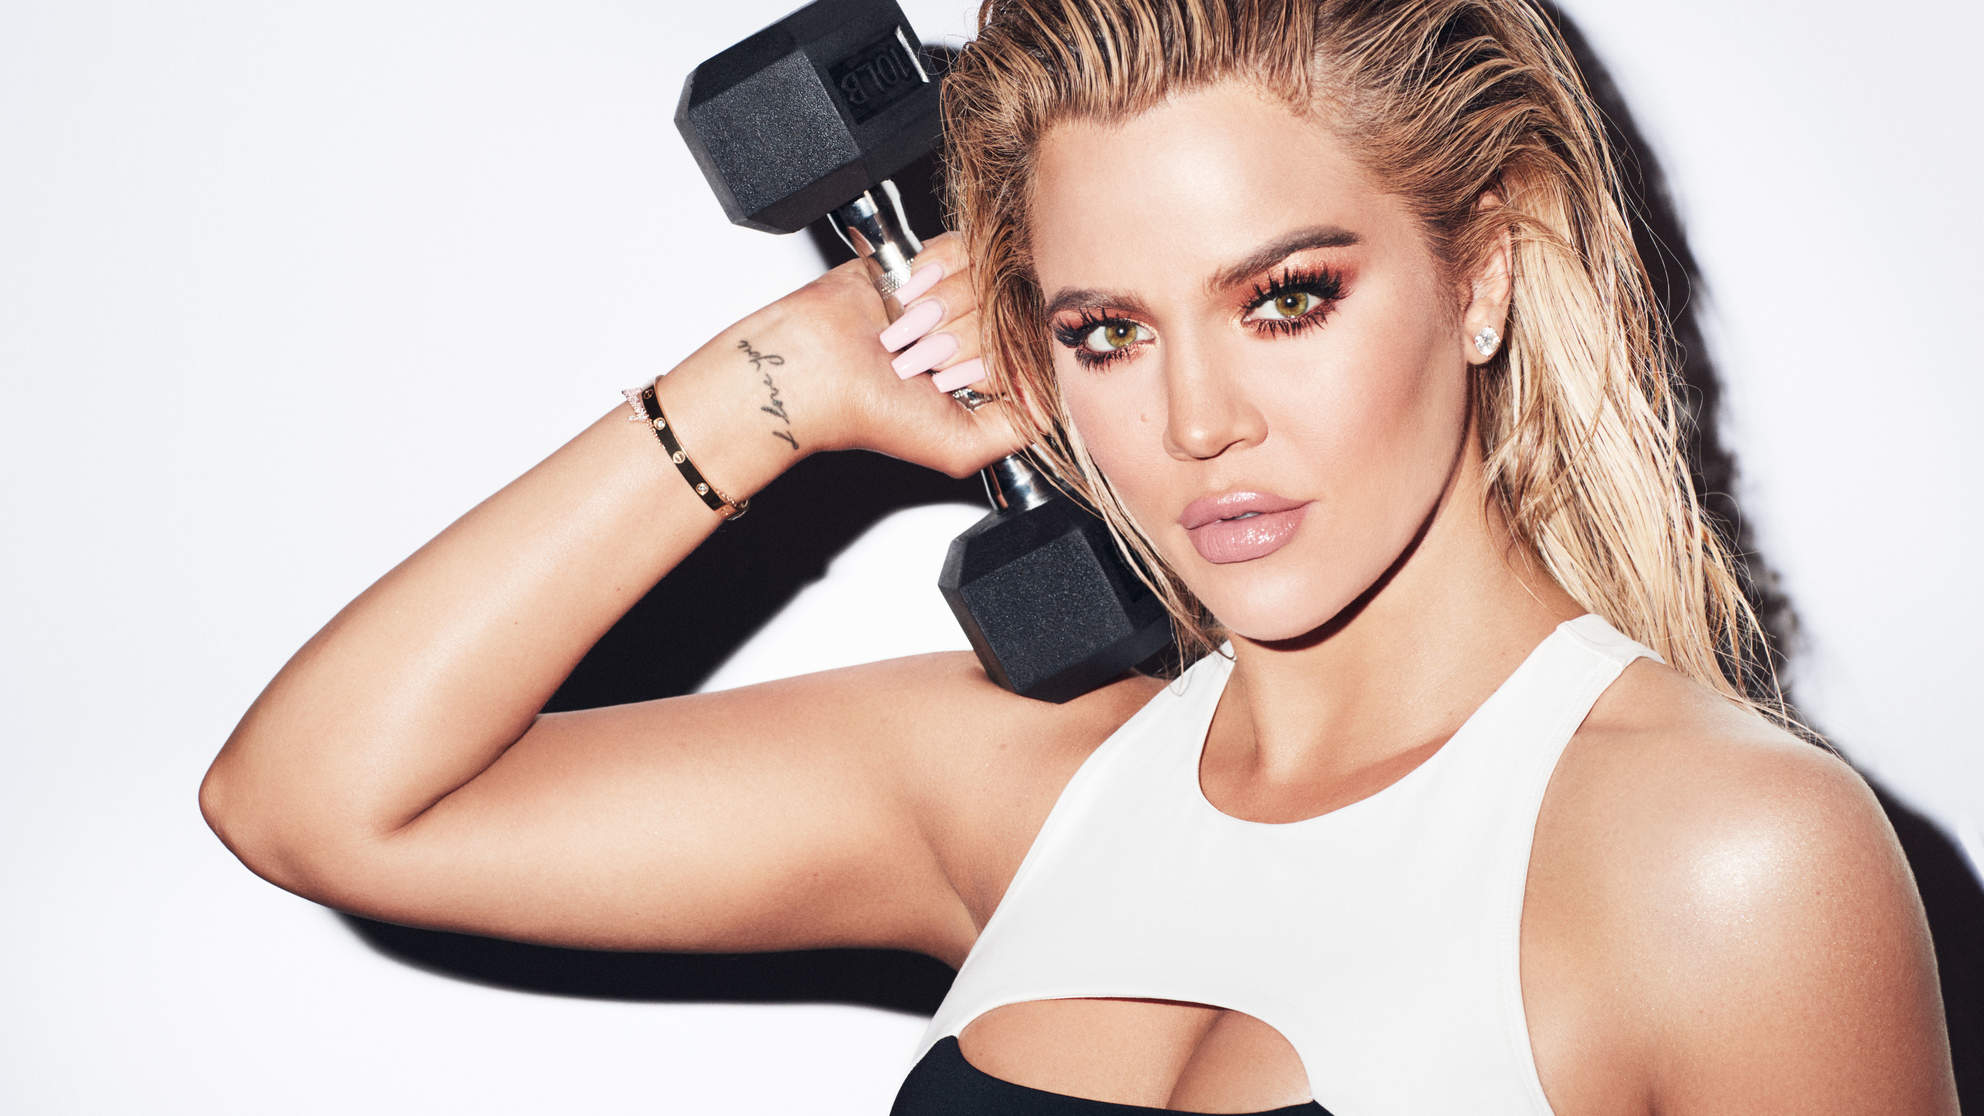 Khloe Kardashian responds to Tristan Thompson's alleged infidelity